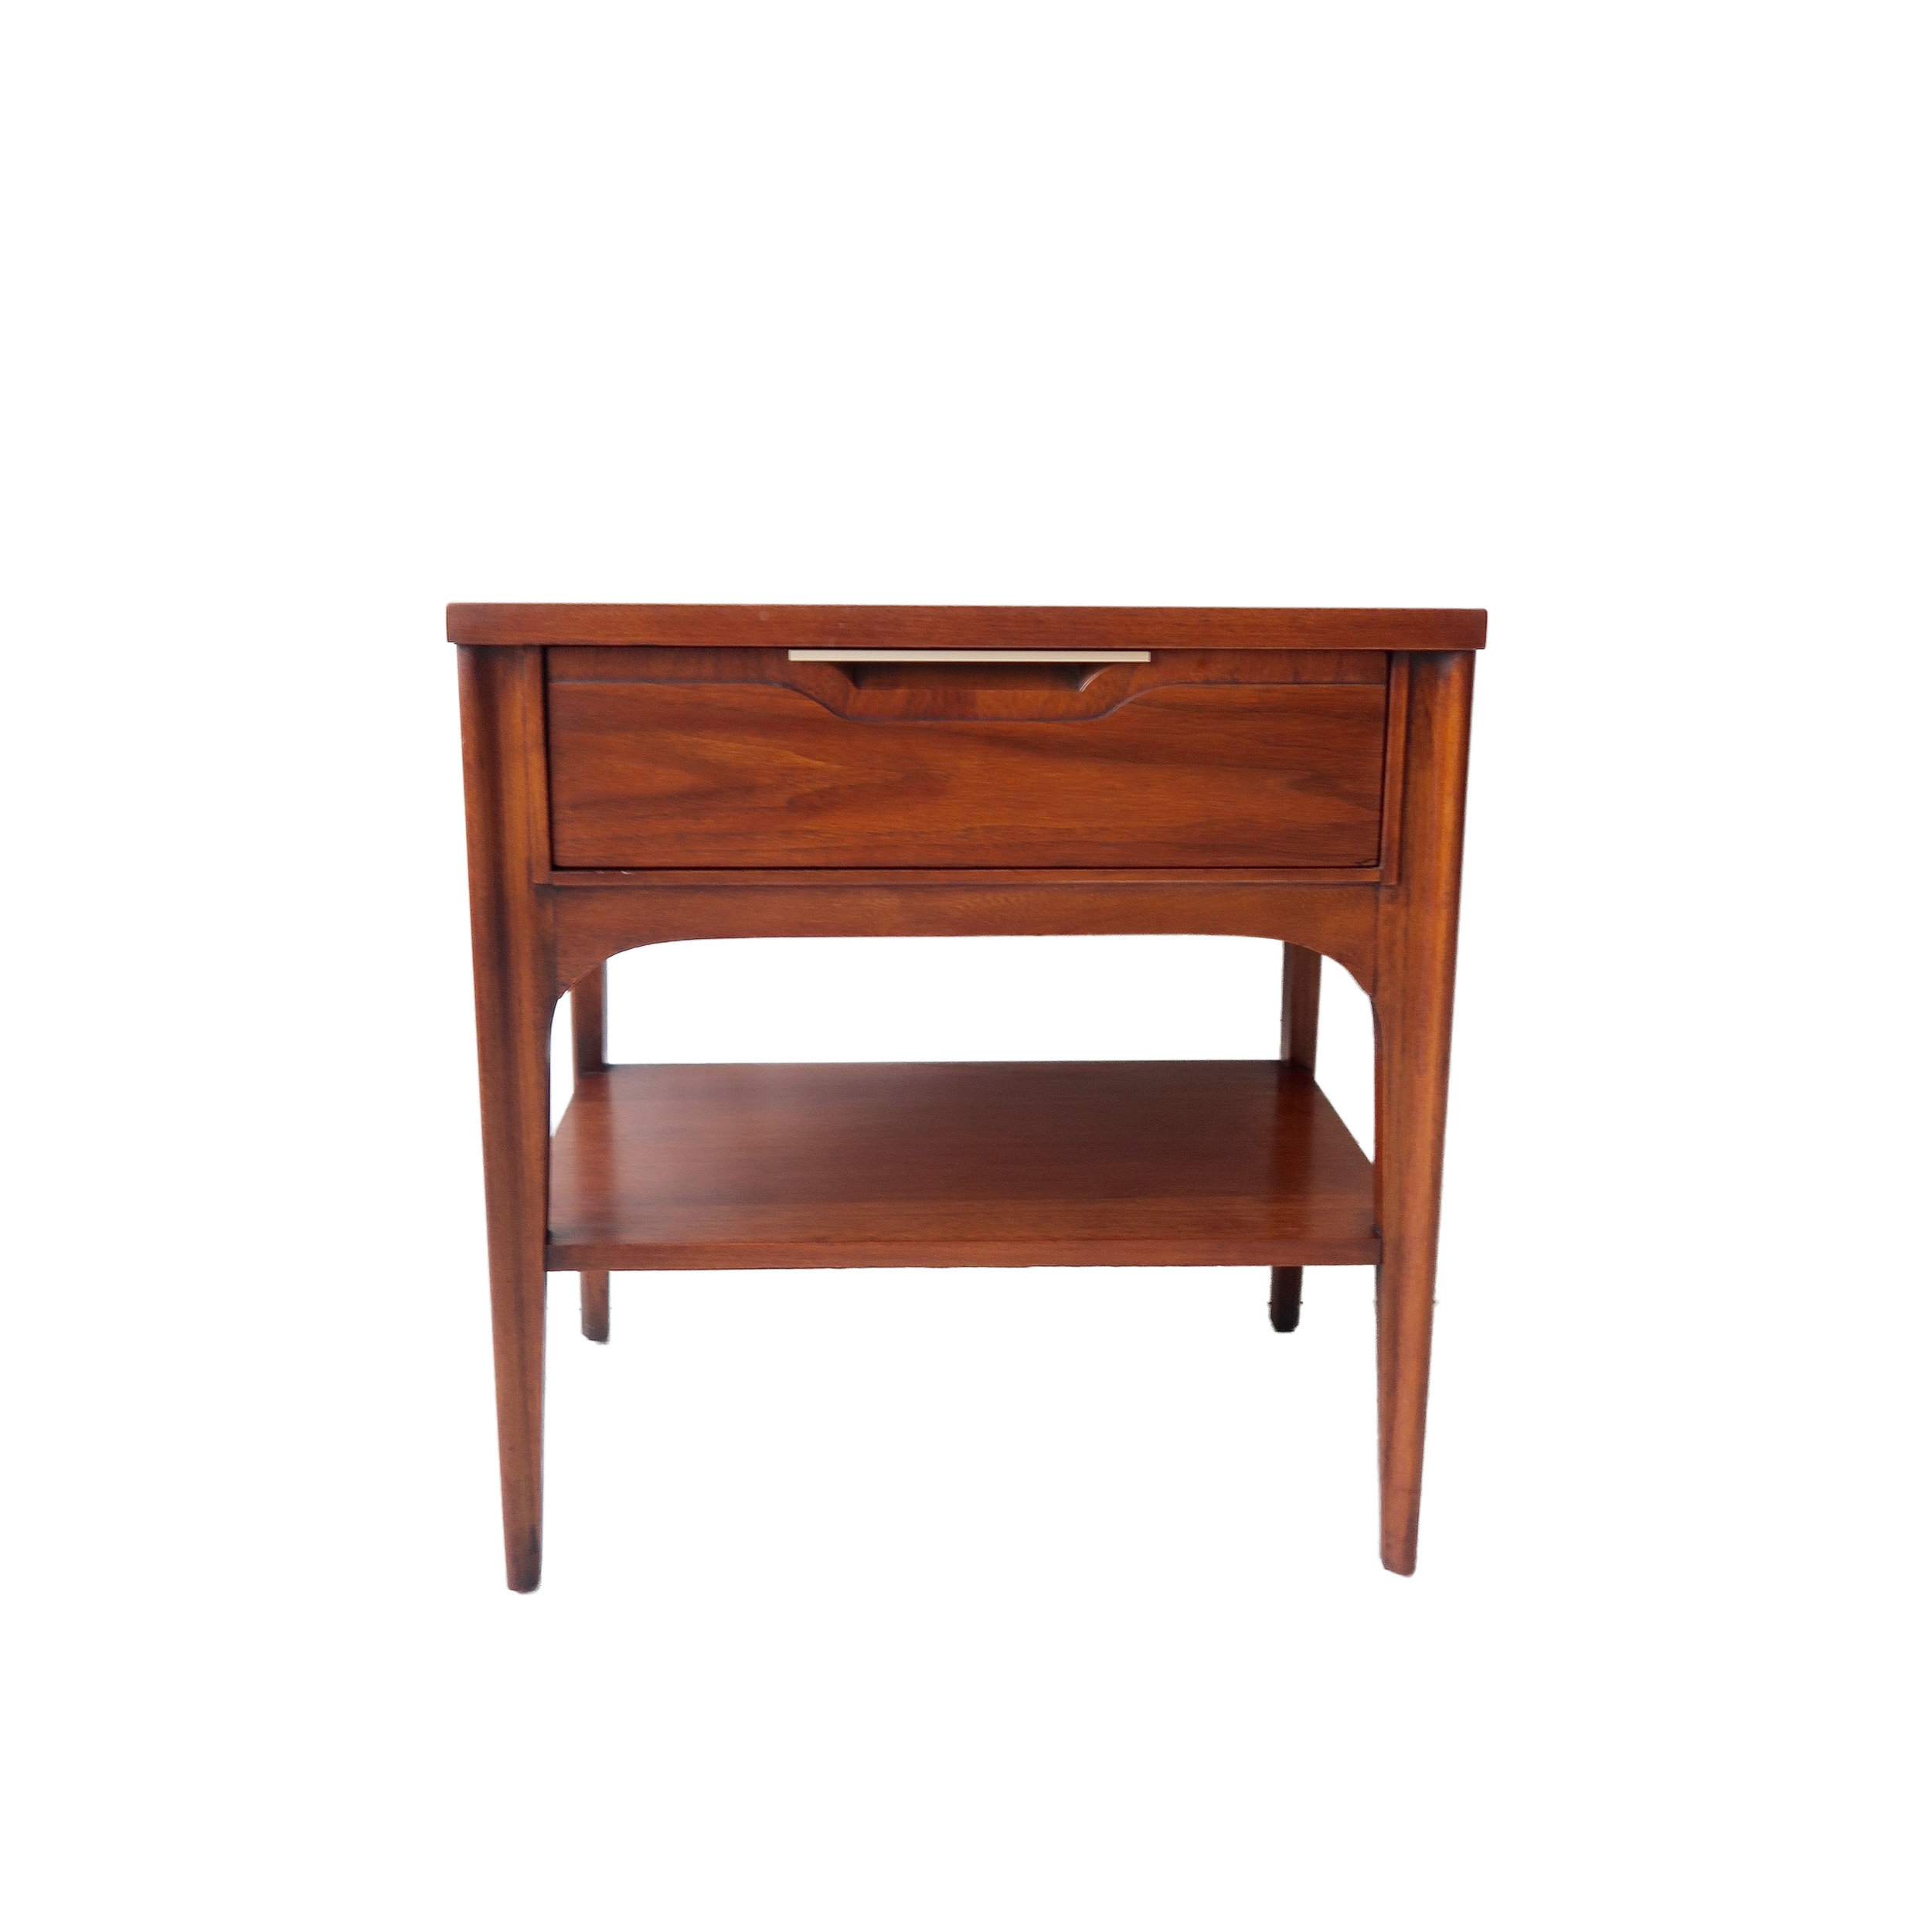 mid century modern nightstand with silver handle.jpg